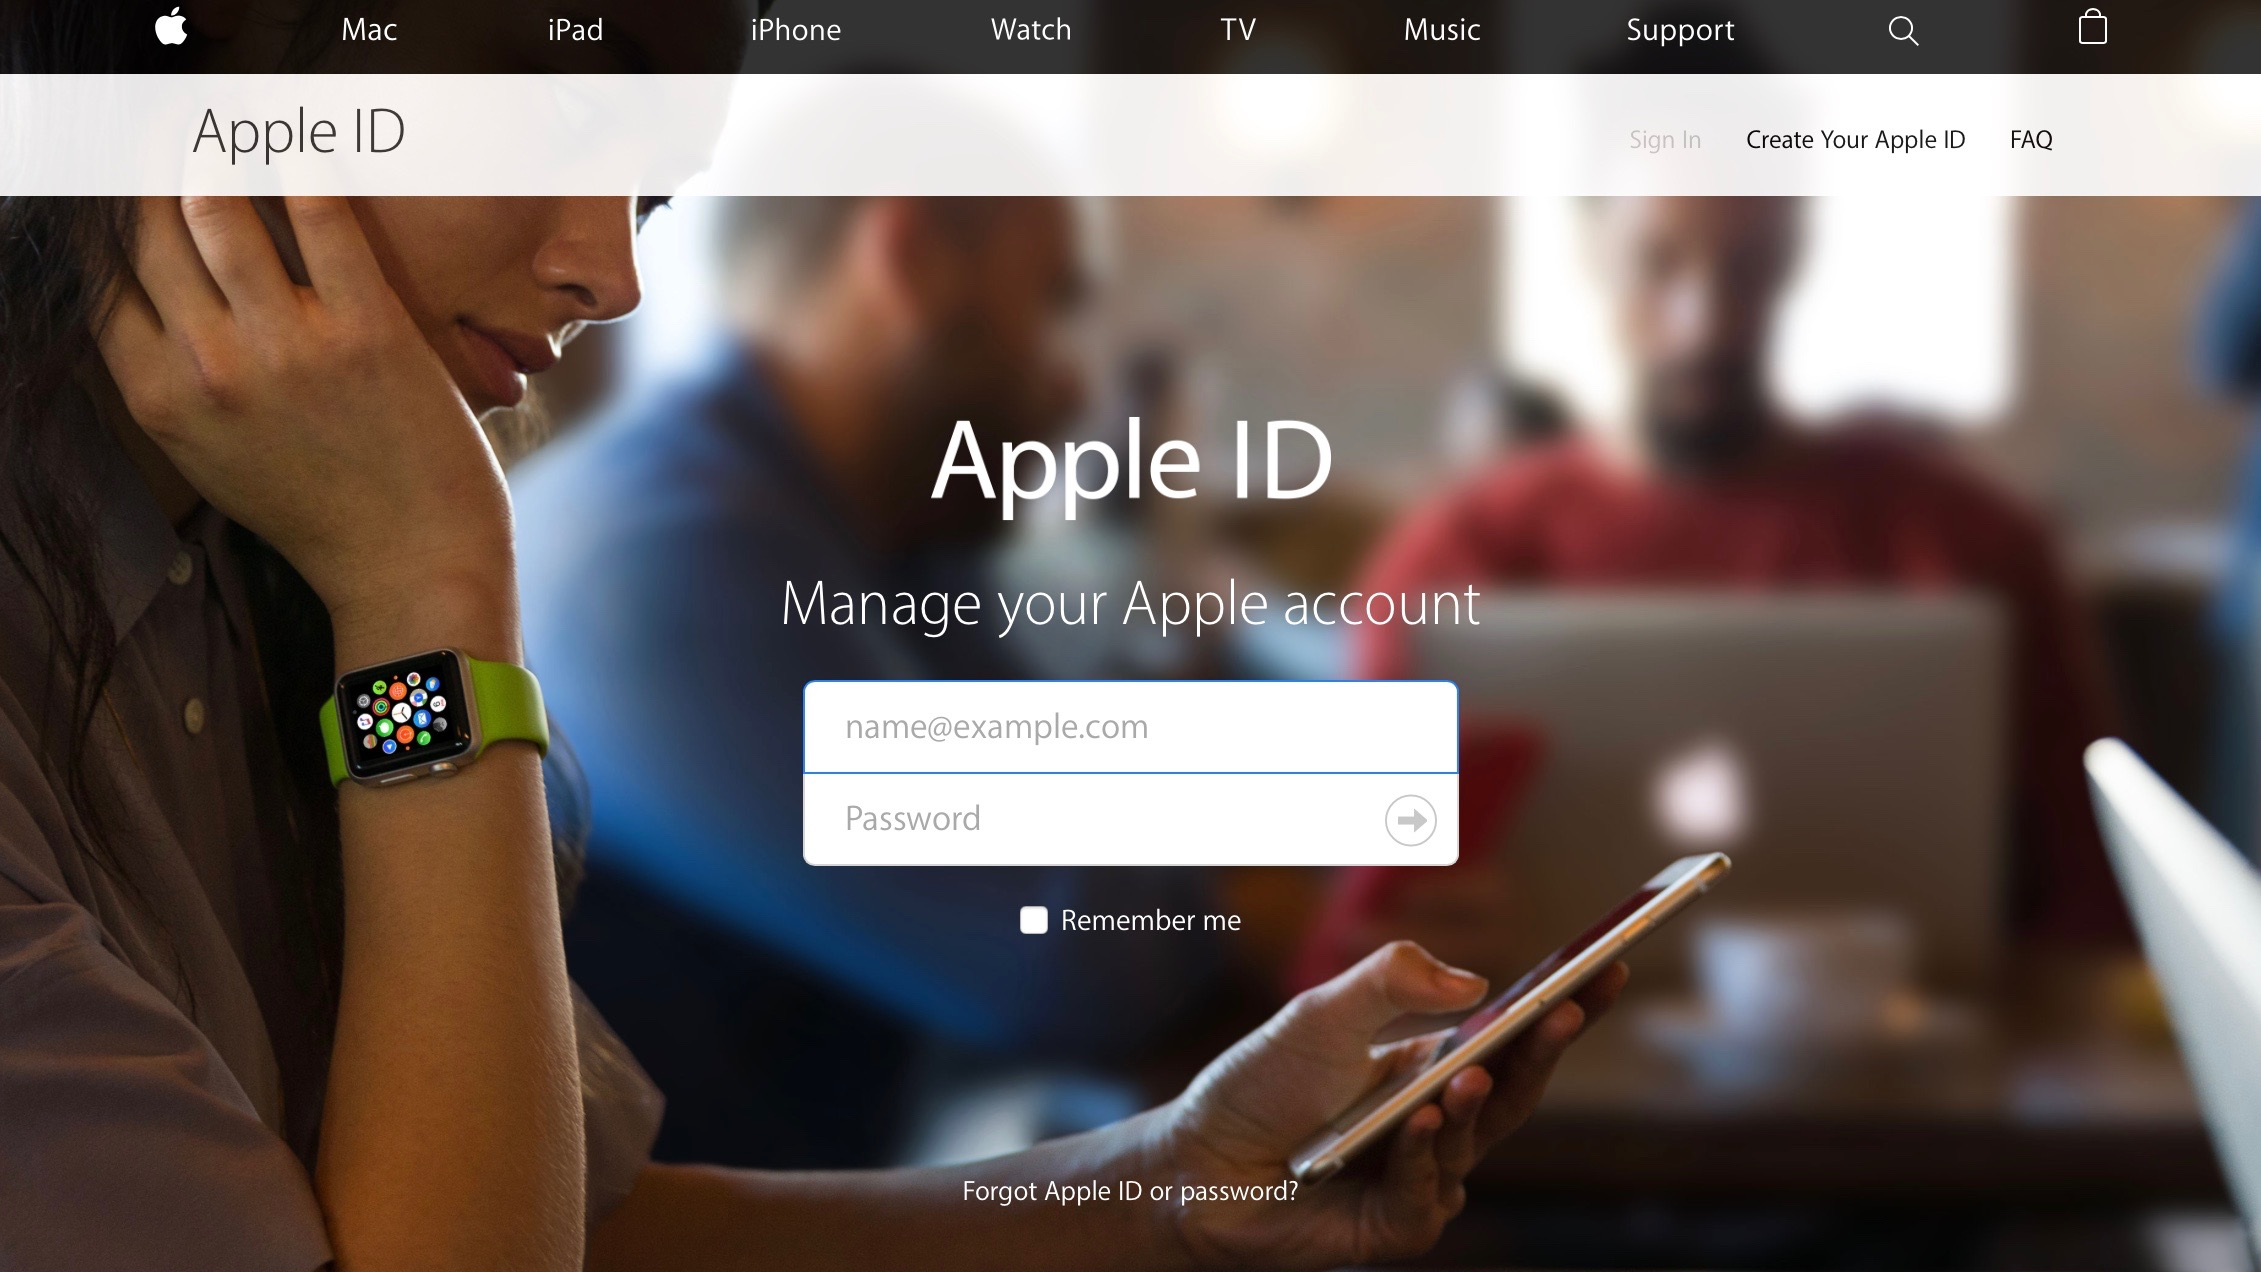 Apple ID web portal